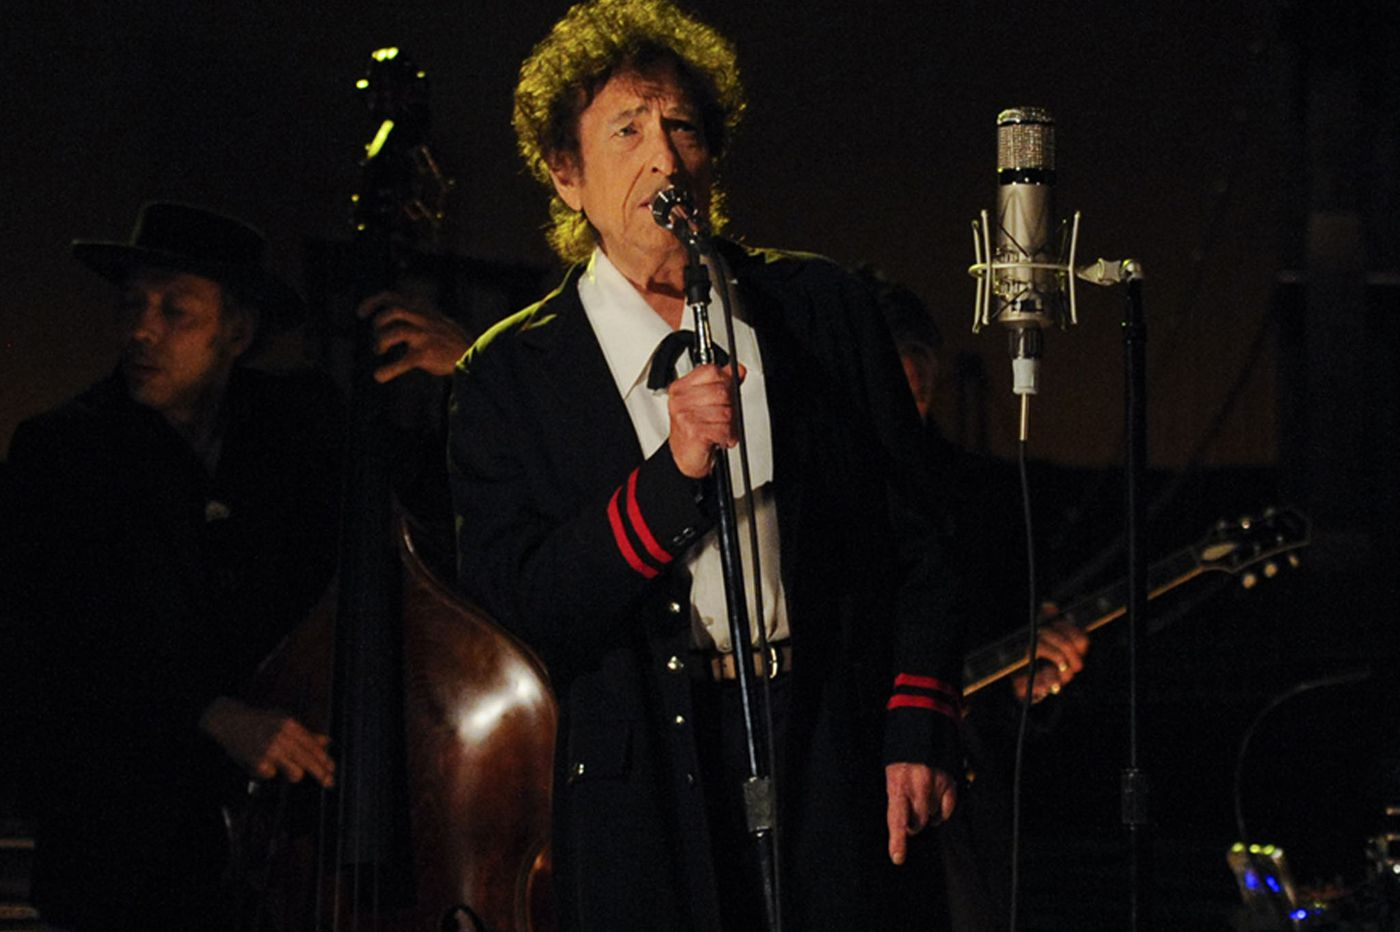 The Met is reborn: Restored opera house opens on North Broad Street with Bob Dylan